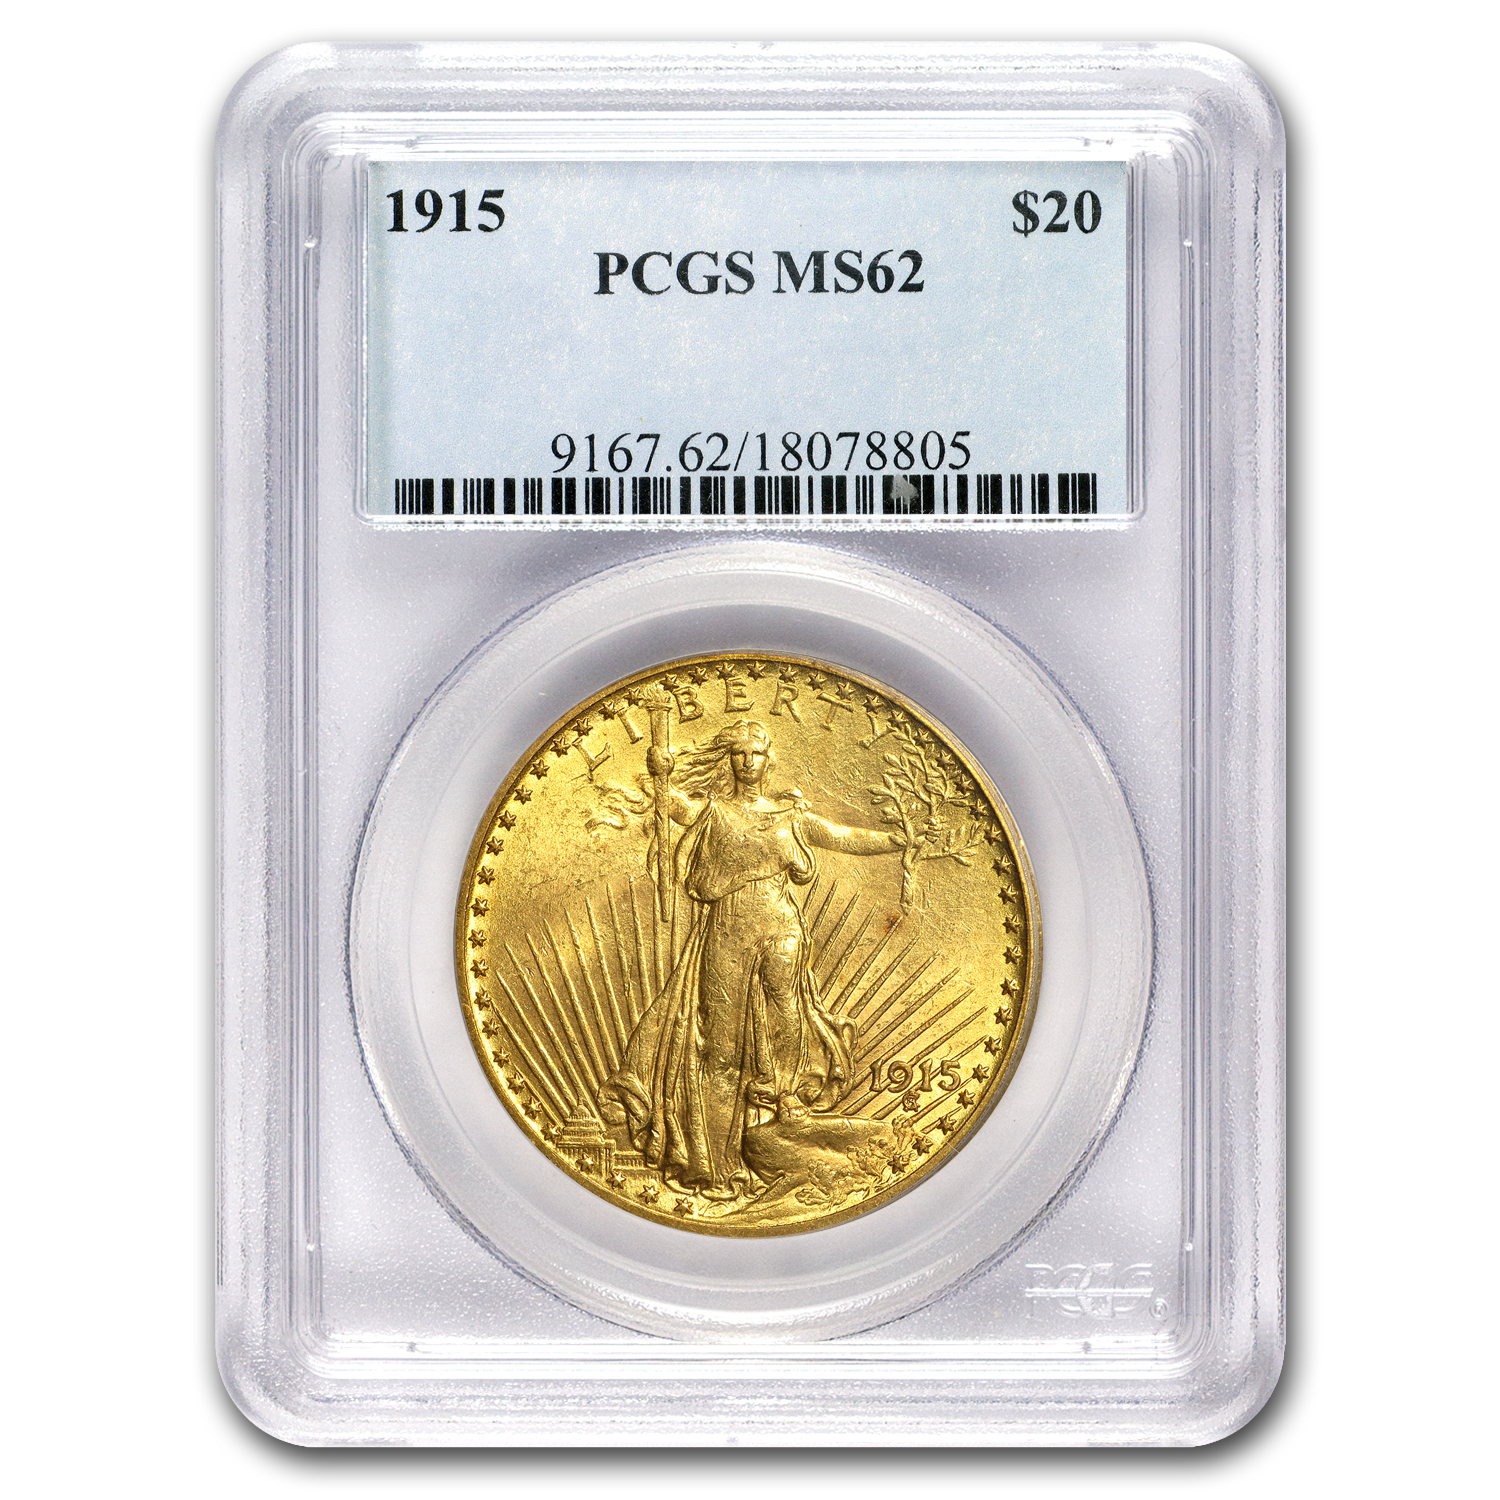 1915 $20 Saint-Gaudens Gold Double Eagle MS-62 PCGS